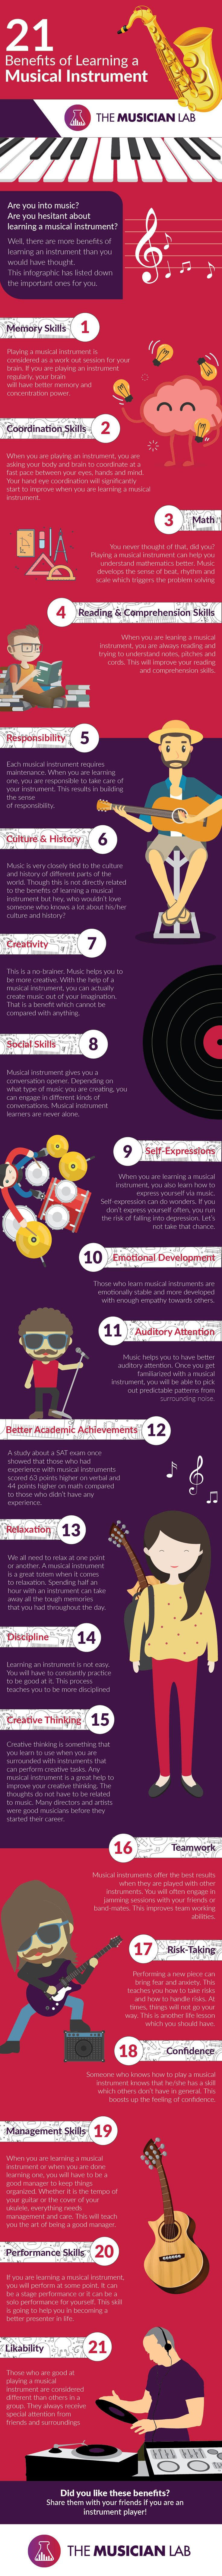 Music is important in so many levels and becoming a musician has plenty positive aspects, find here 21 benefits of learning a musical instrument.